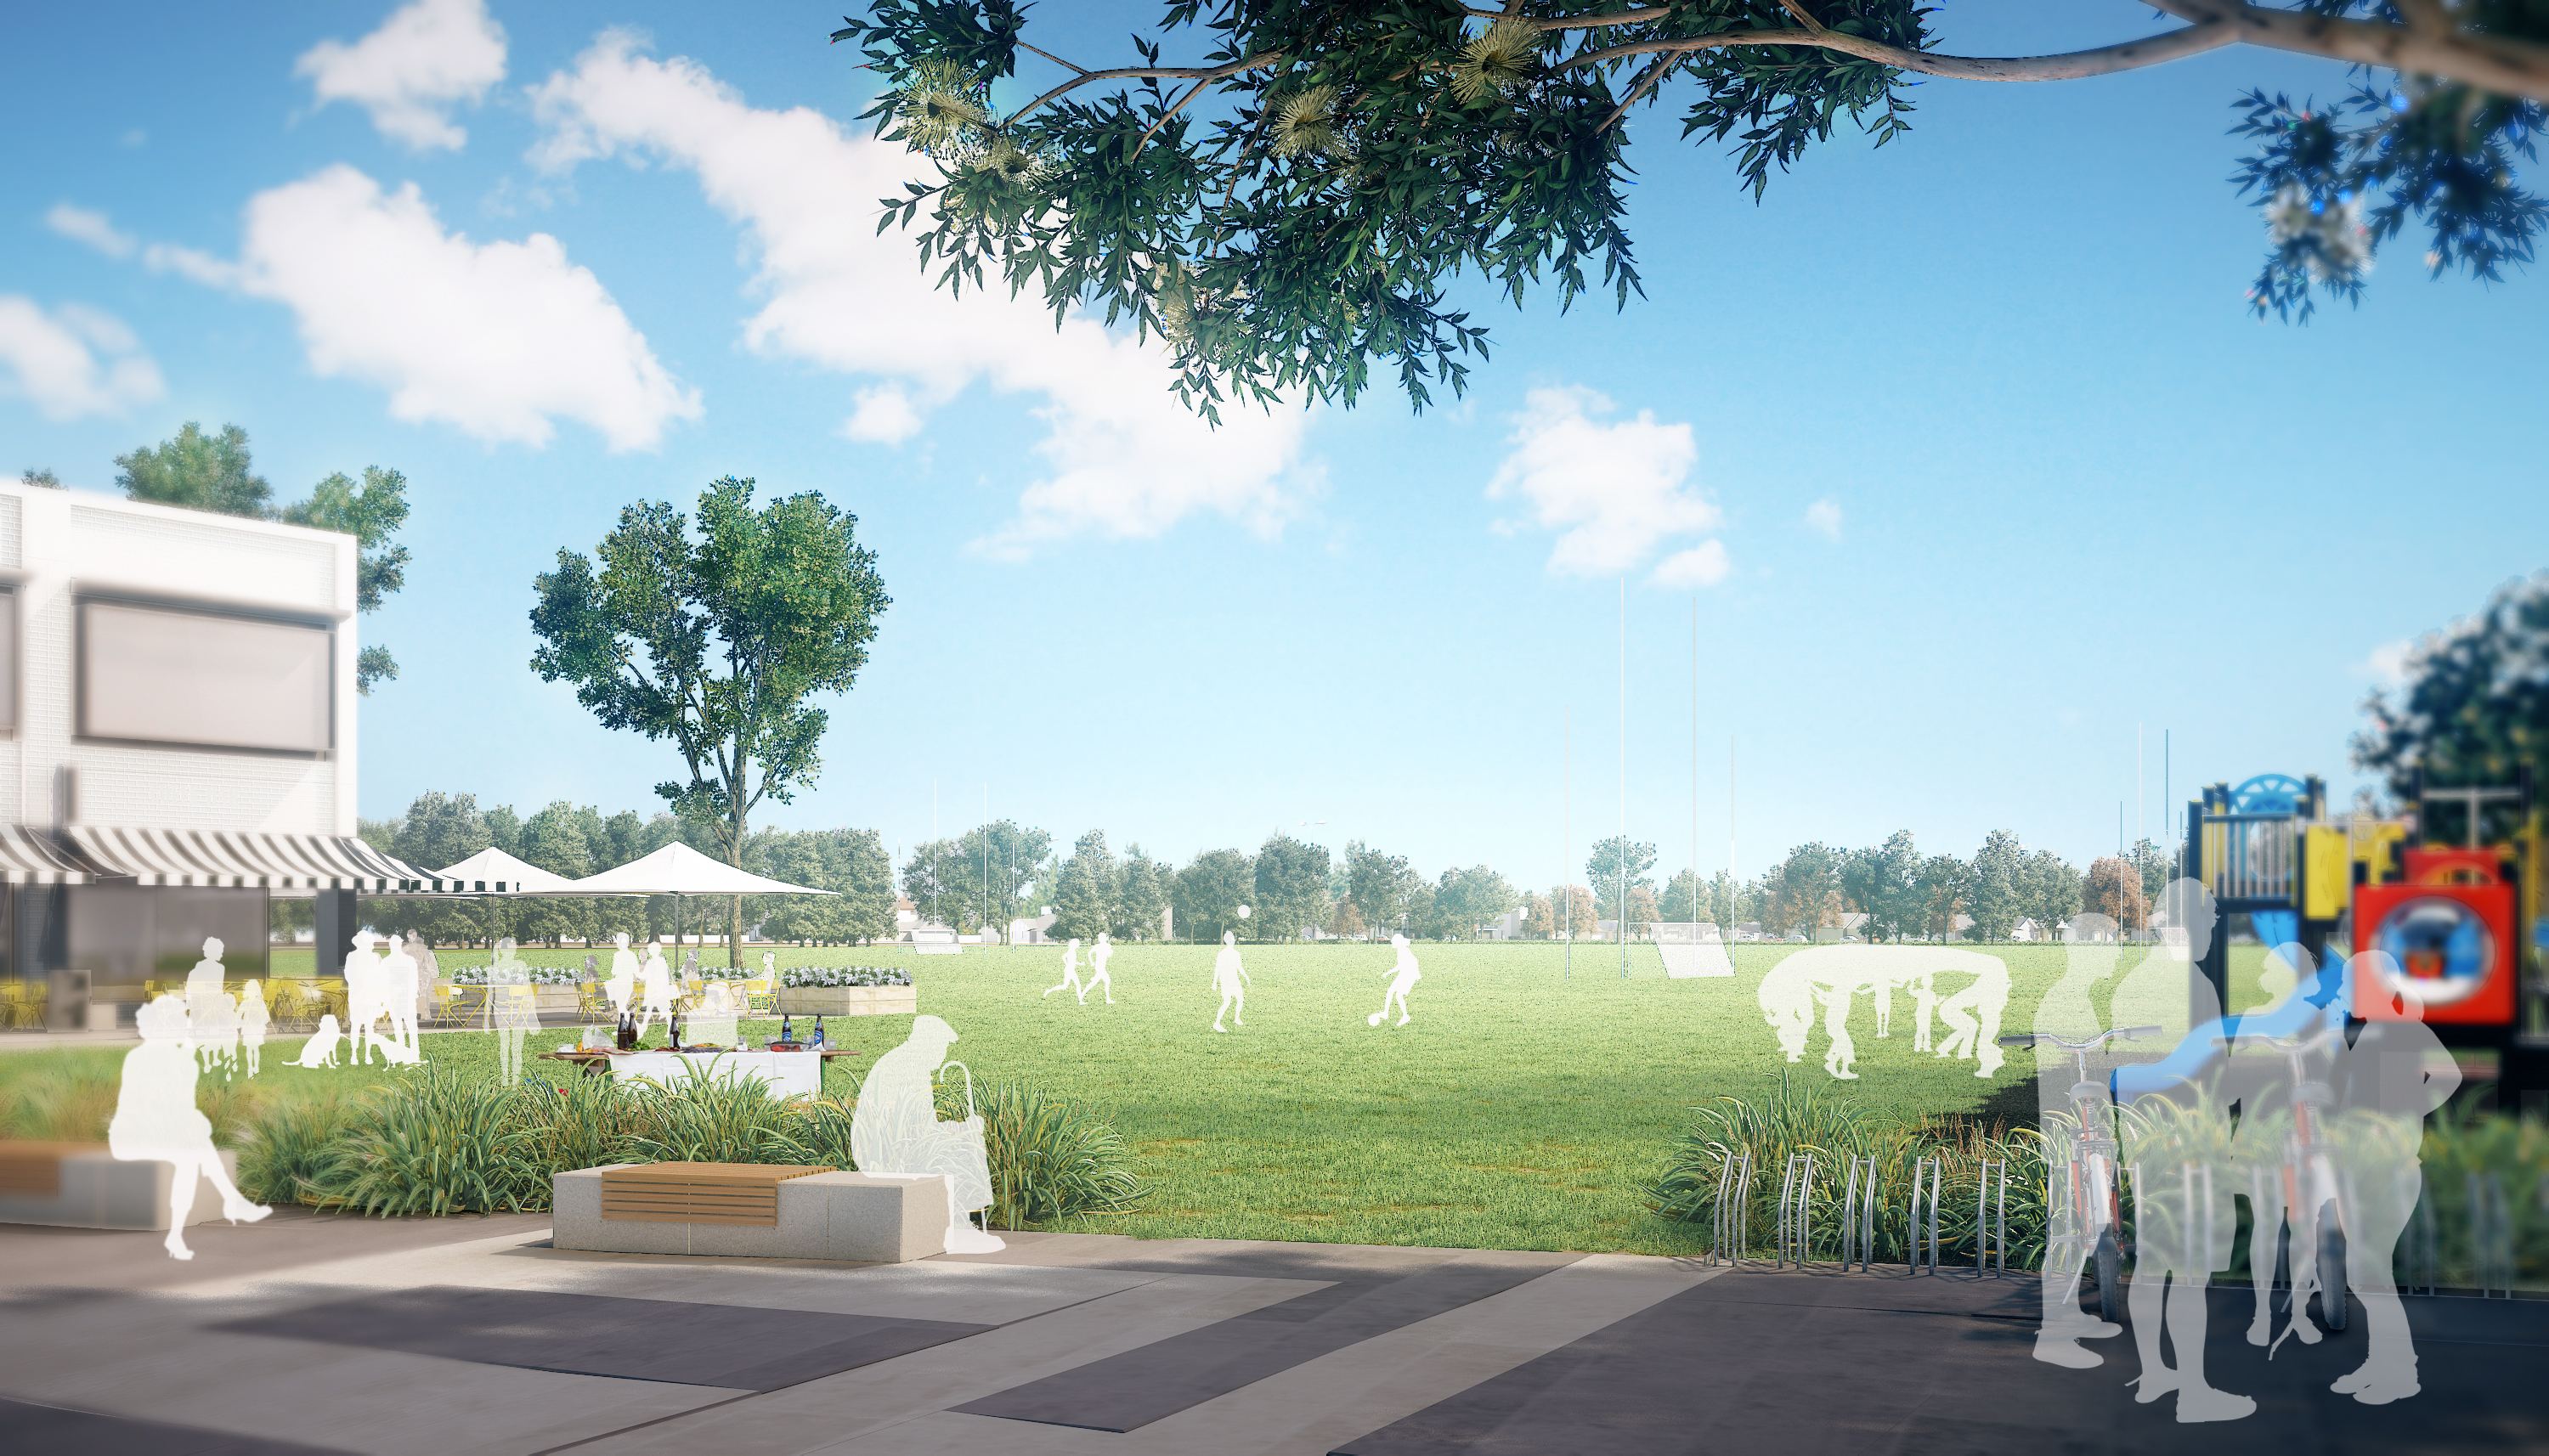 """The development precinct boasts ample """"quality open space that celebrates the natural environment"""" and """"new green corridors for residents""""."""